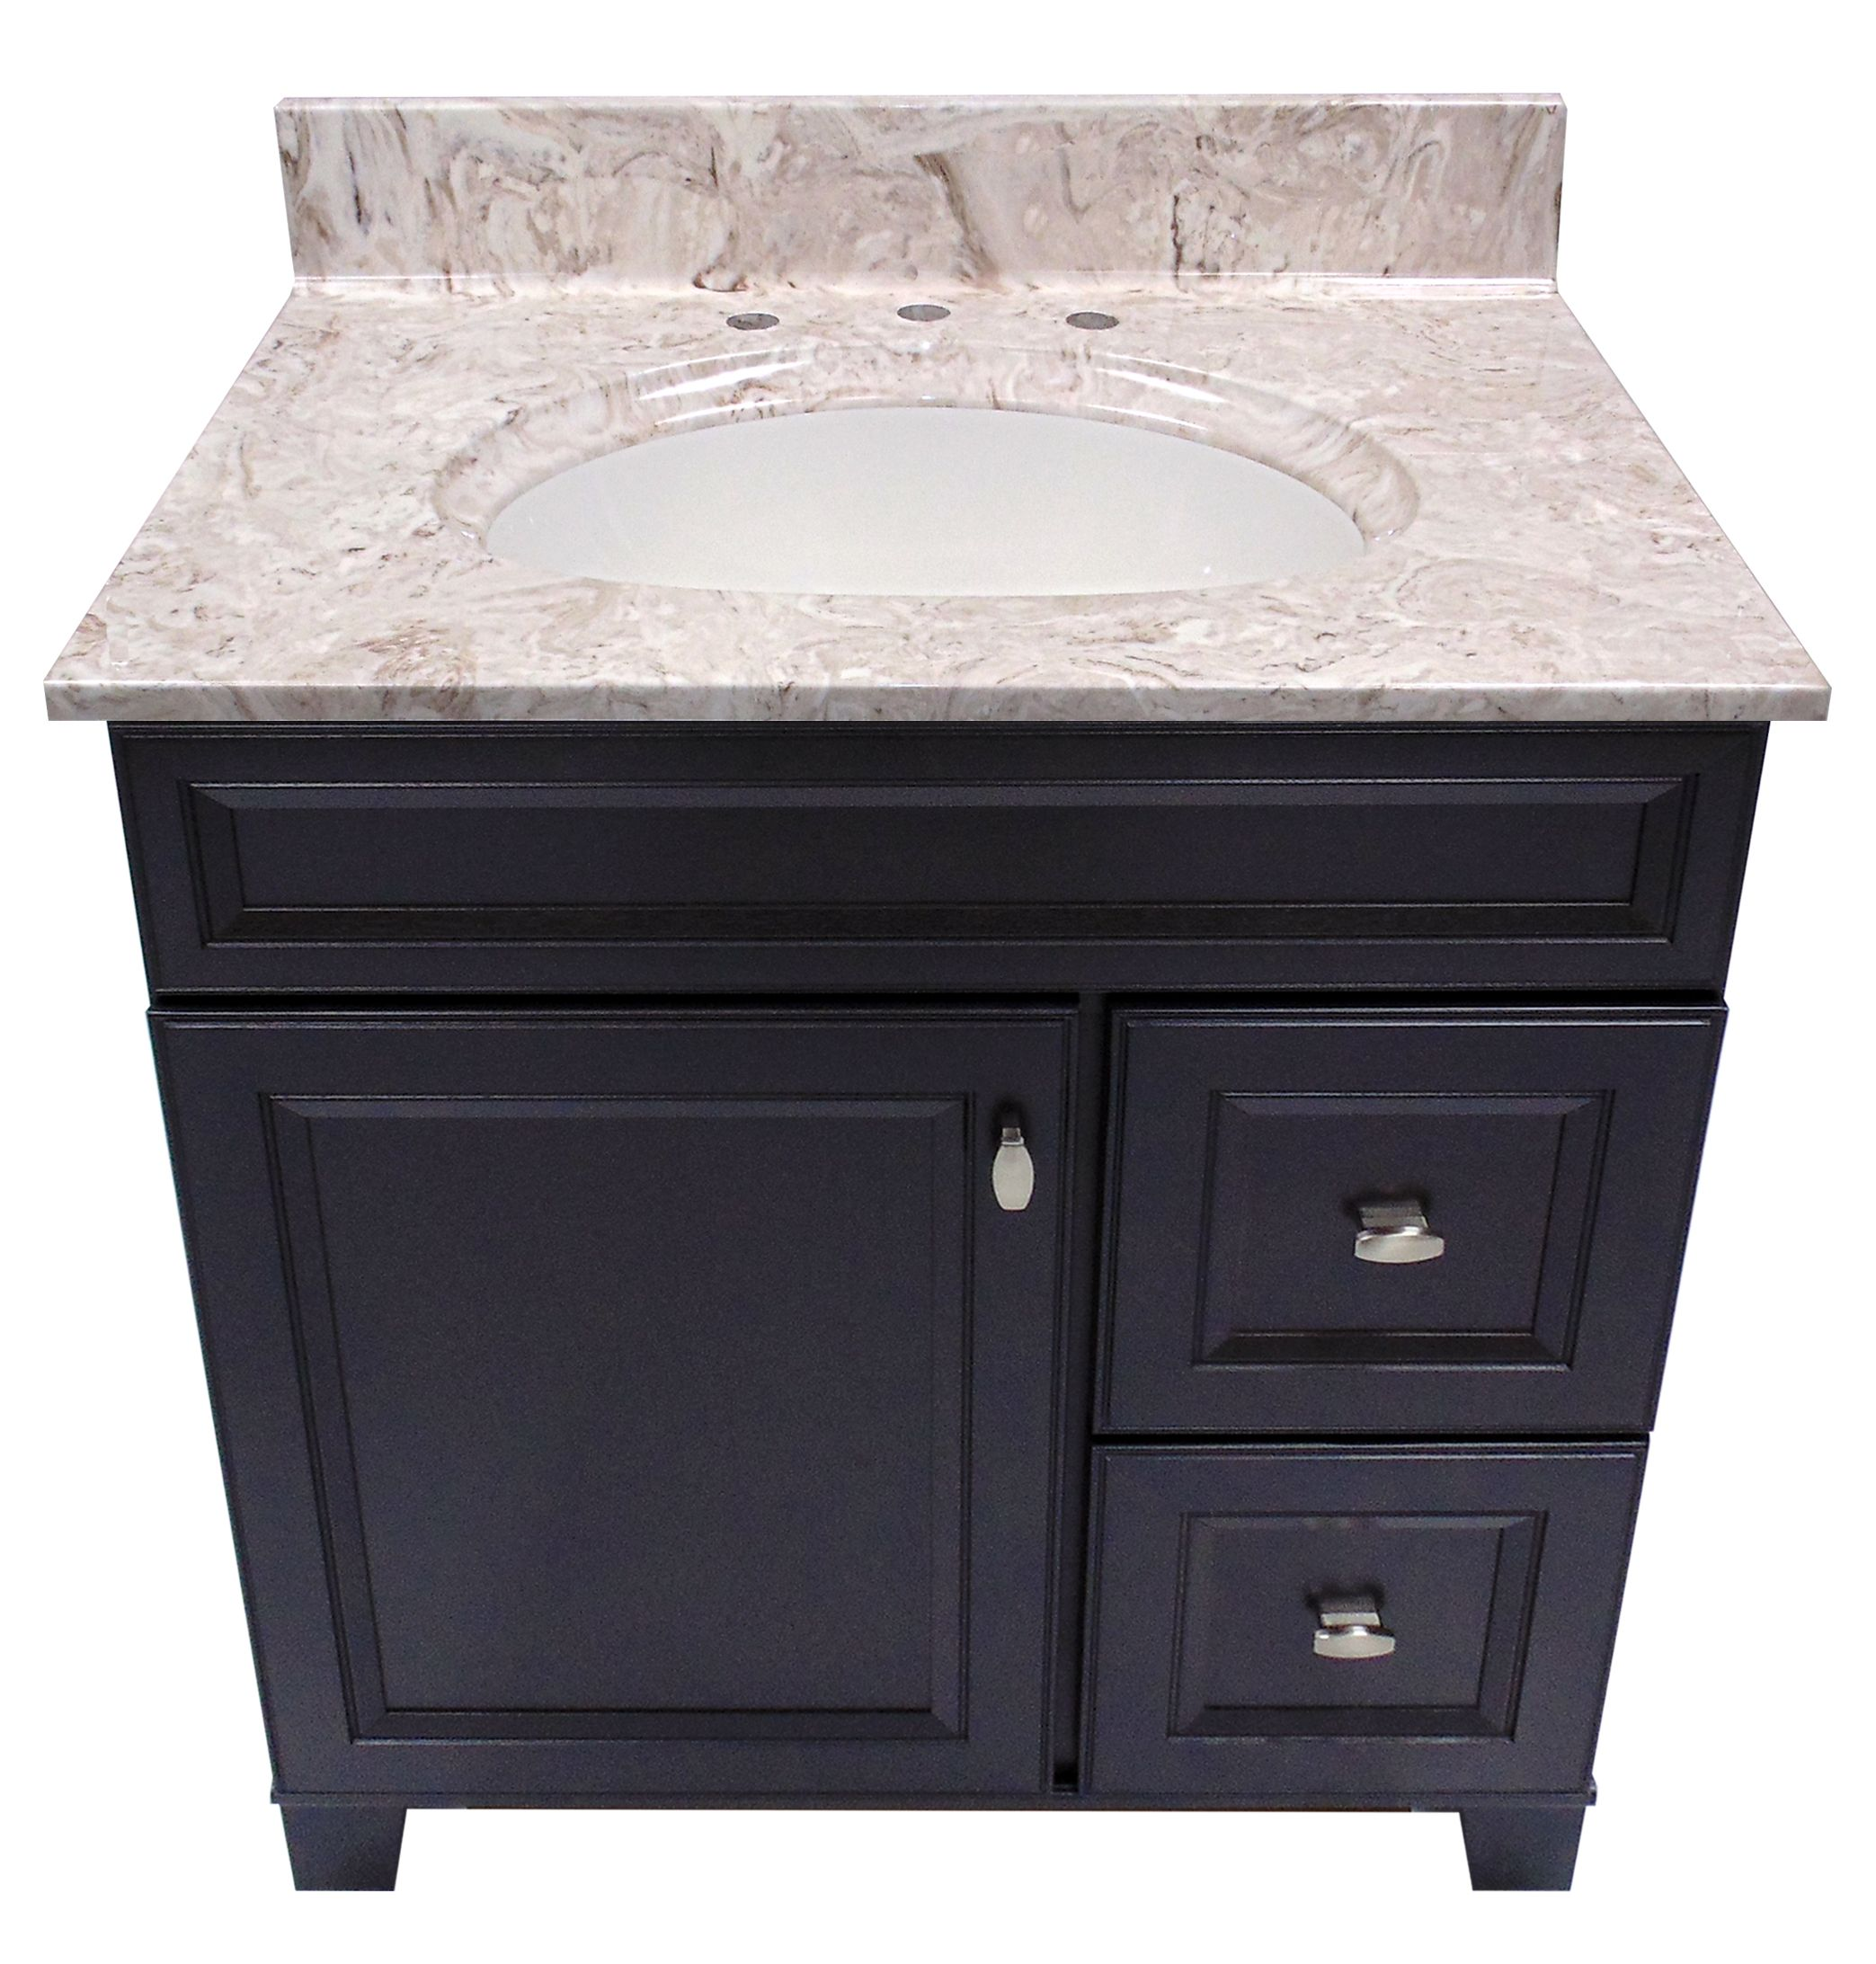 Us Marble Cultured Vanity Top Shown In Brown On White With An Olympus Integral Bowl